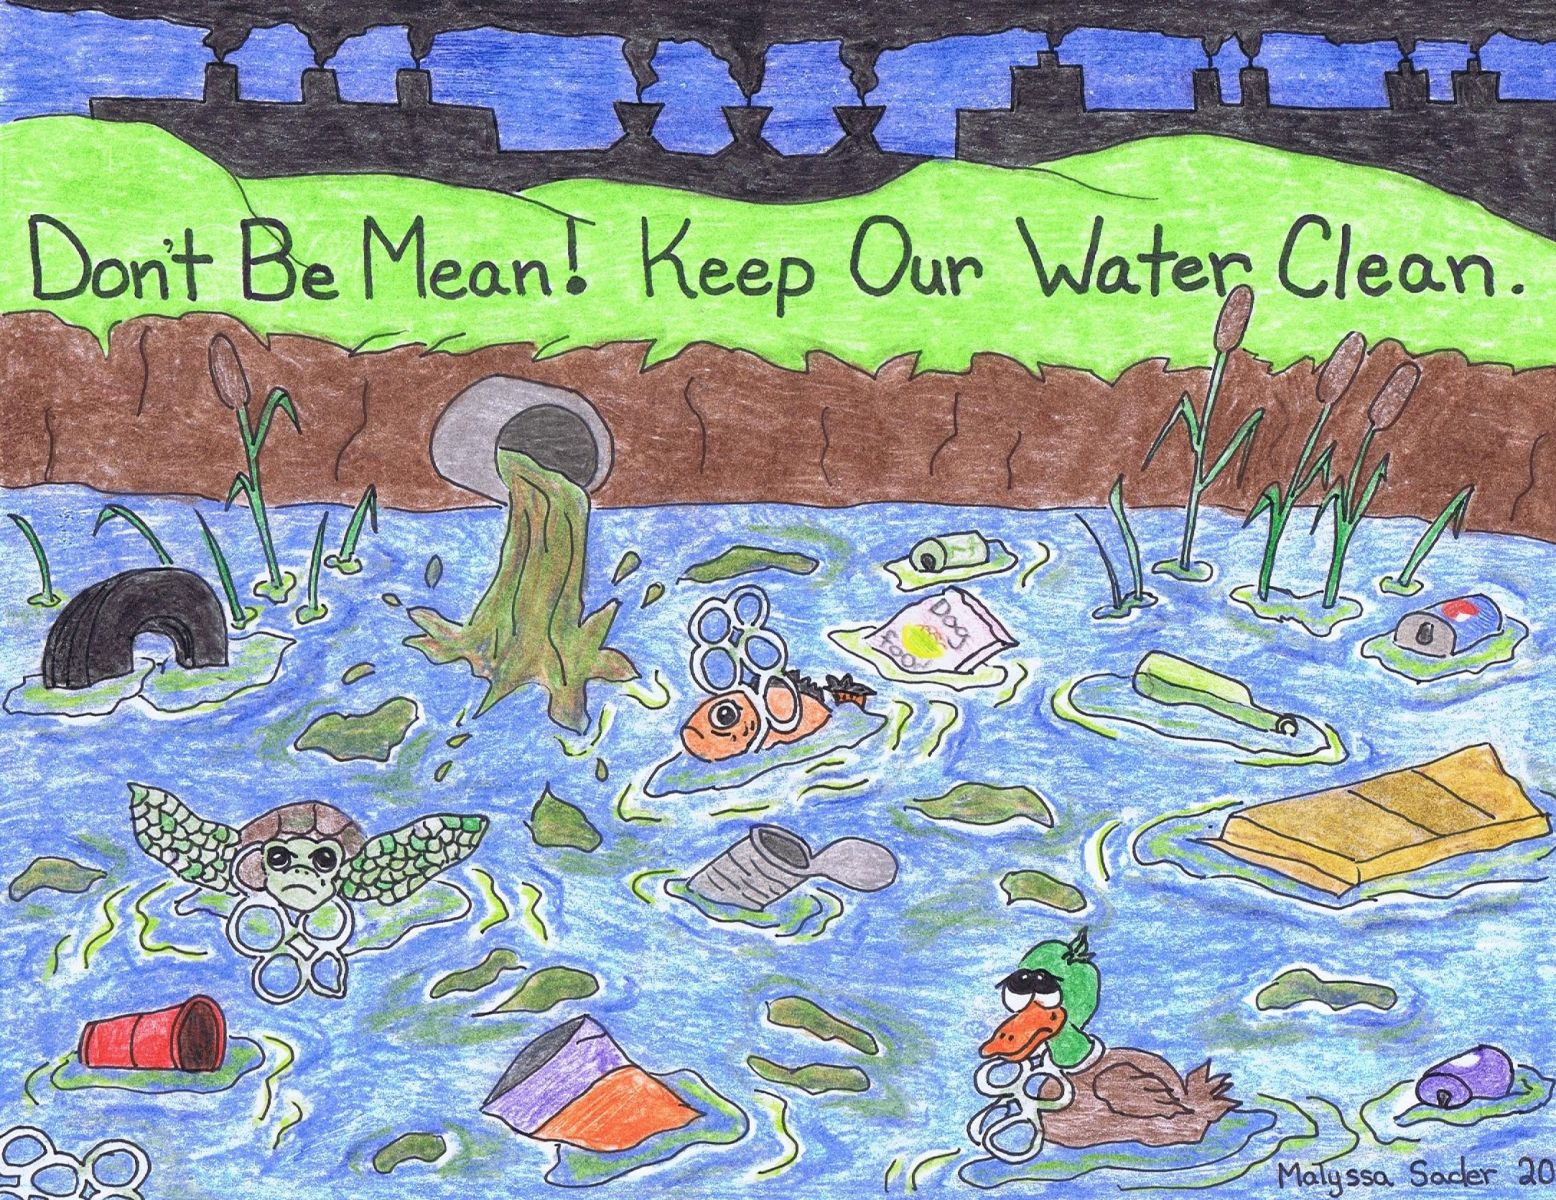 save our river You can go to the syrcl (south yuba river citizens league) website and find more information on how to save our river editor's note: tanner huntley is a 16-year old student at sierra academy .